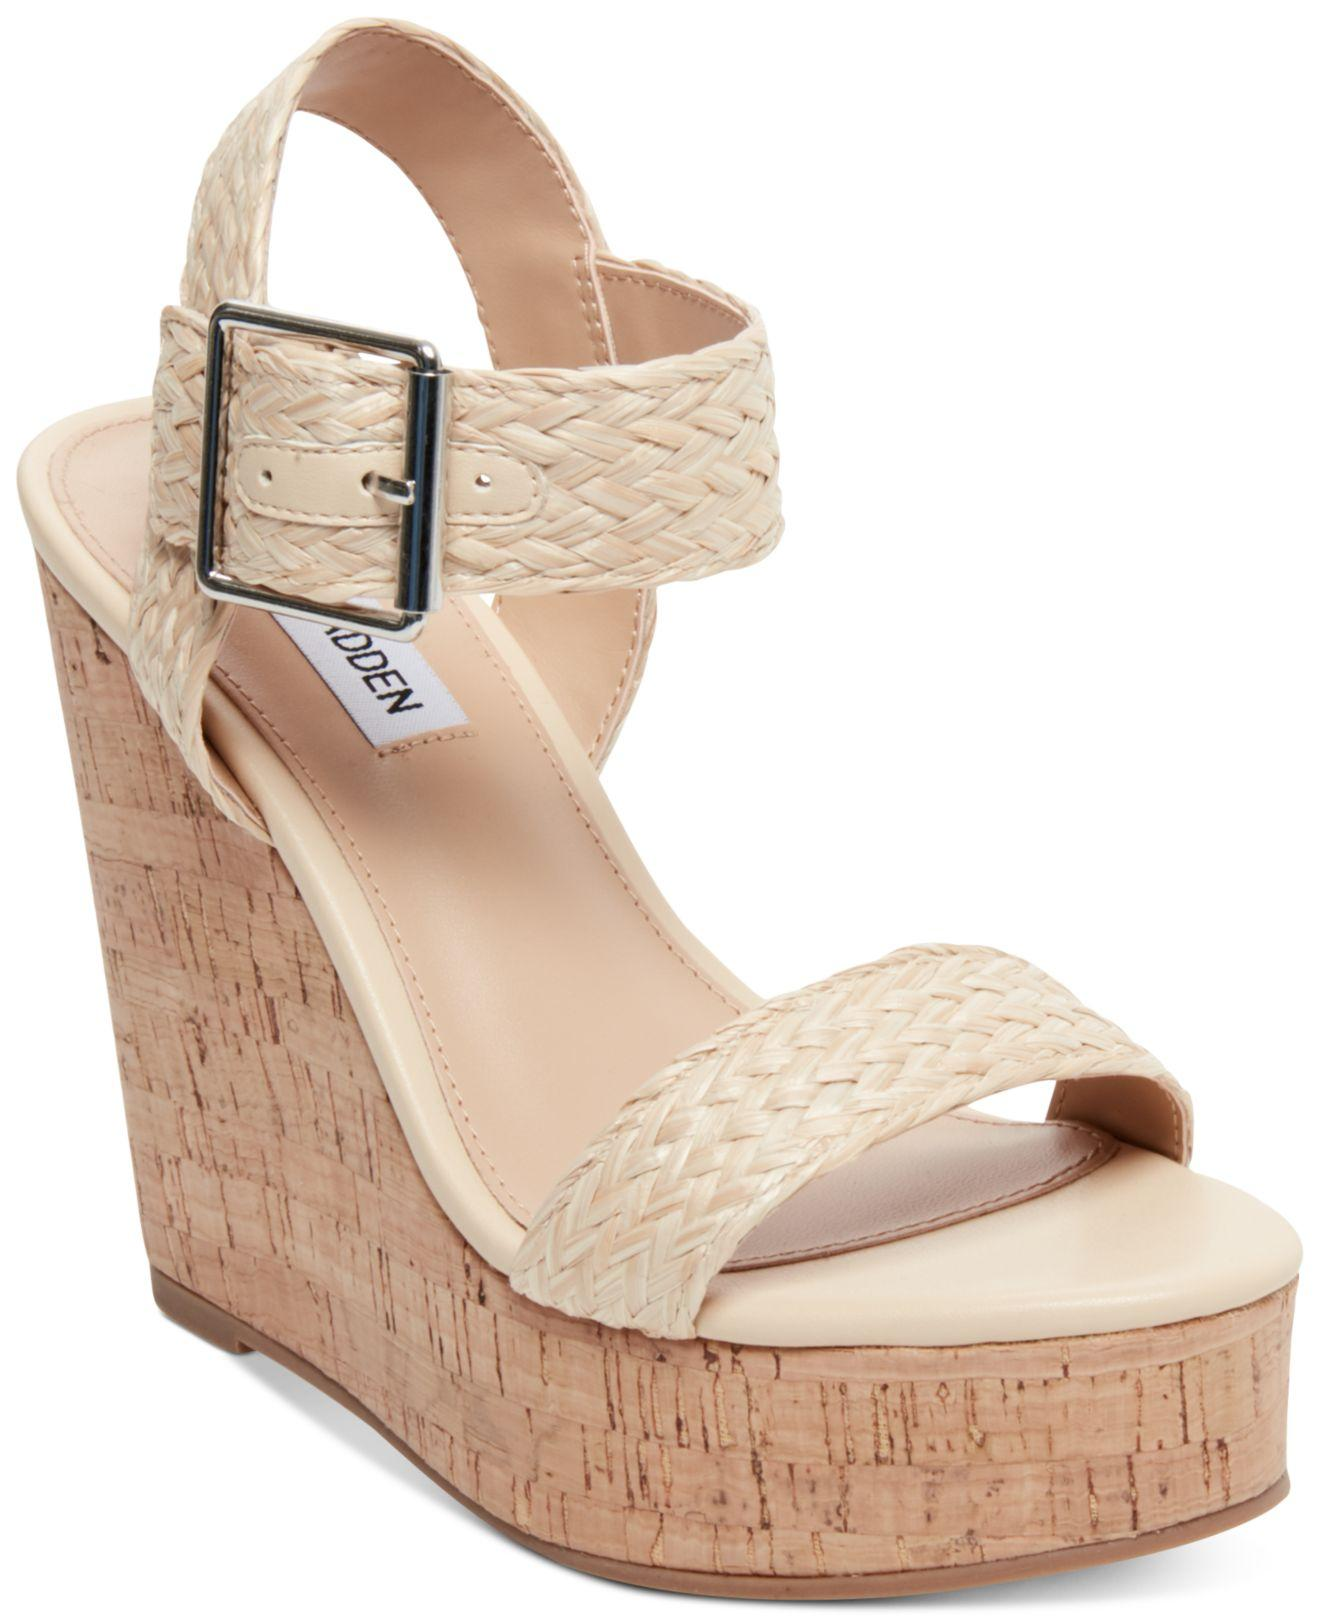 5538cd96769 Lyst - Steve Madden Splash Platform Wedge Sandals in Natural